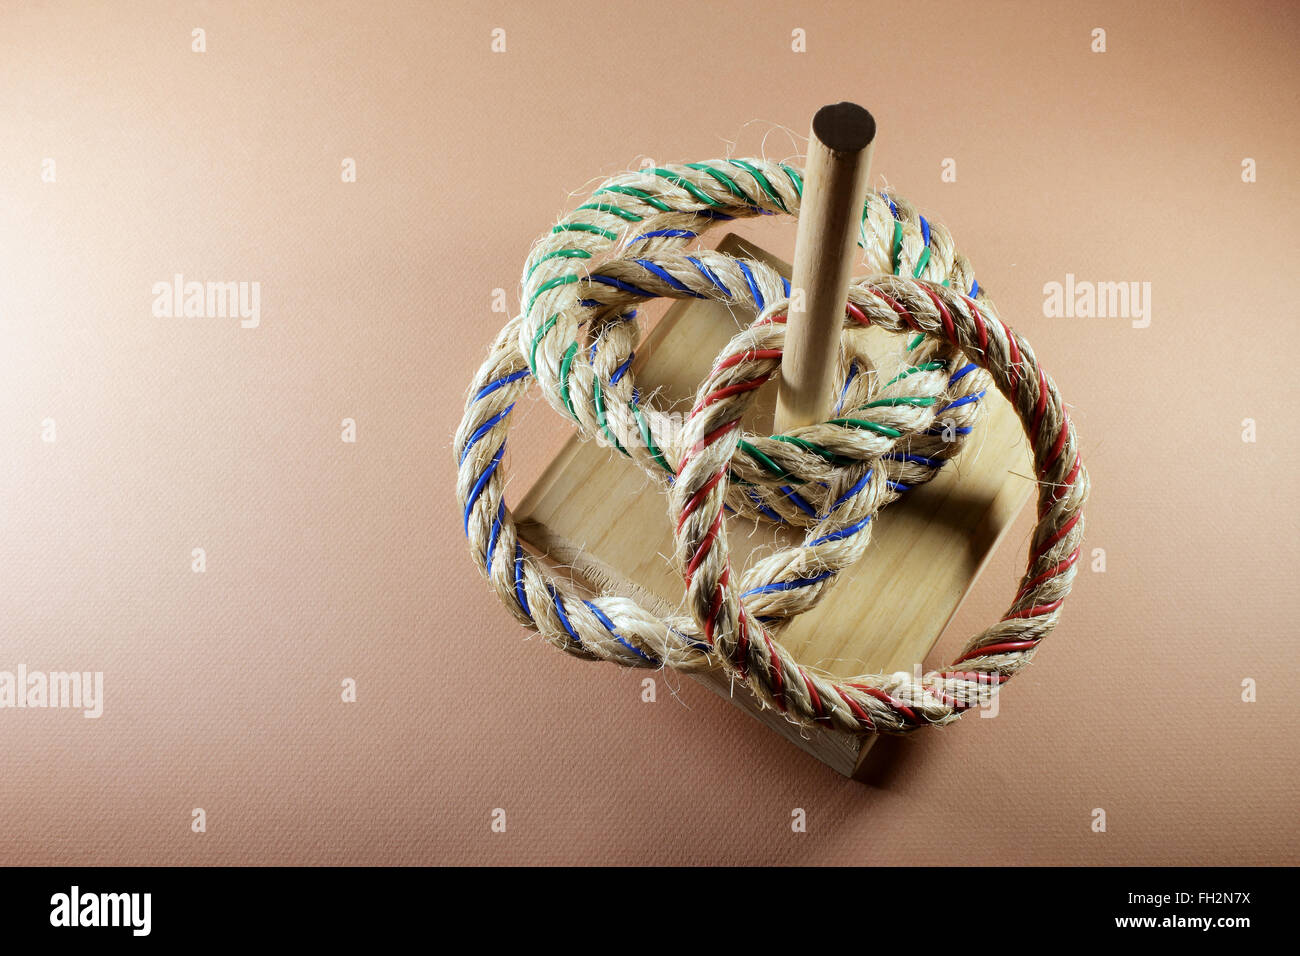 Ring Toss Game - Stock Image